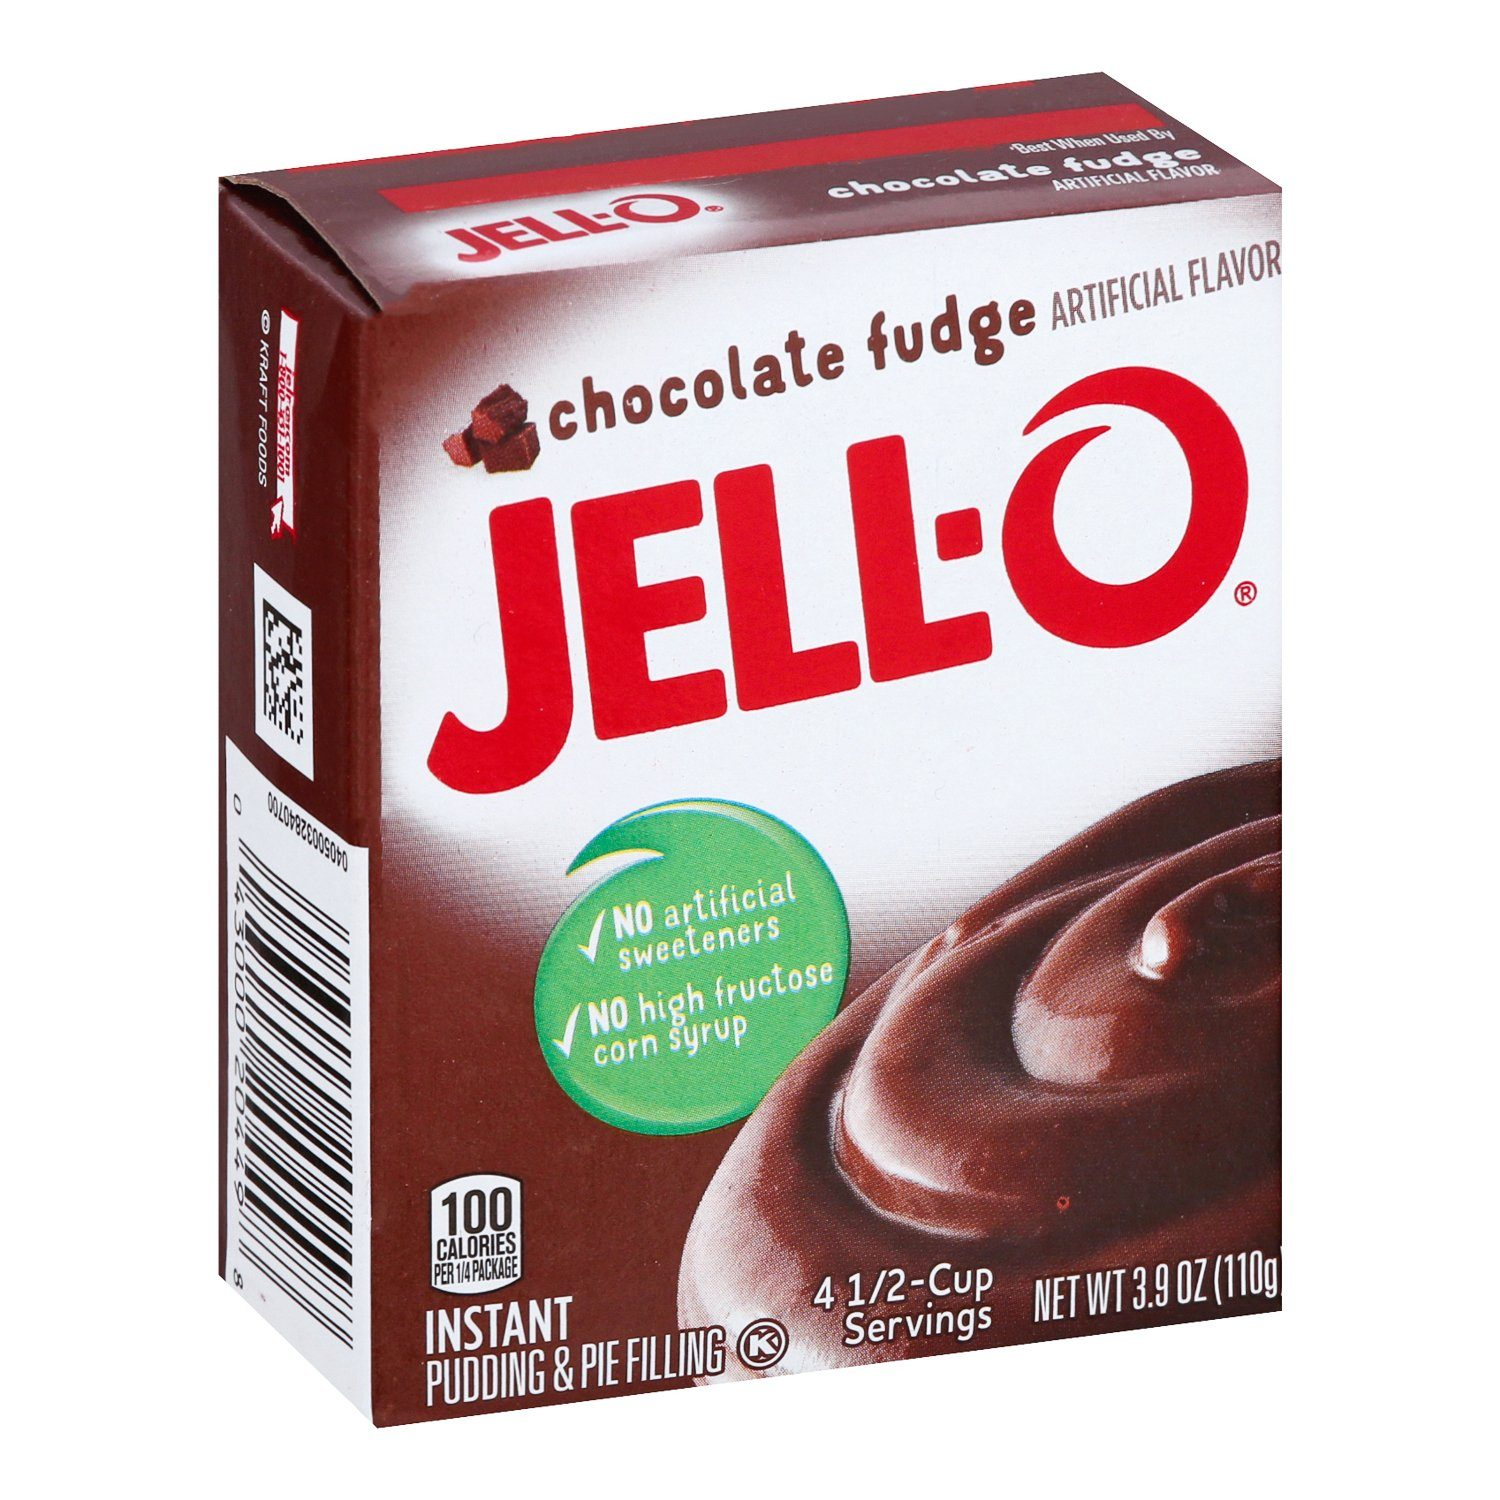 Jell-O Instant Pudding & Pie Filling Mixes Jell-O Chocolate Fudge 3.9 Ounce